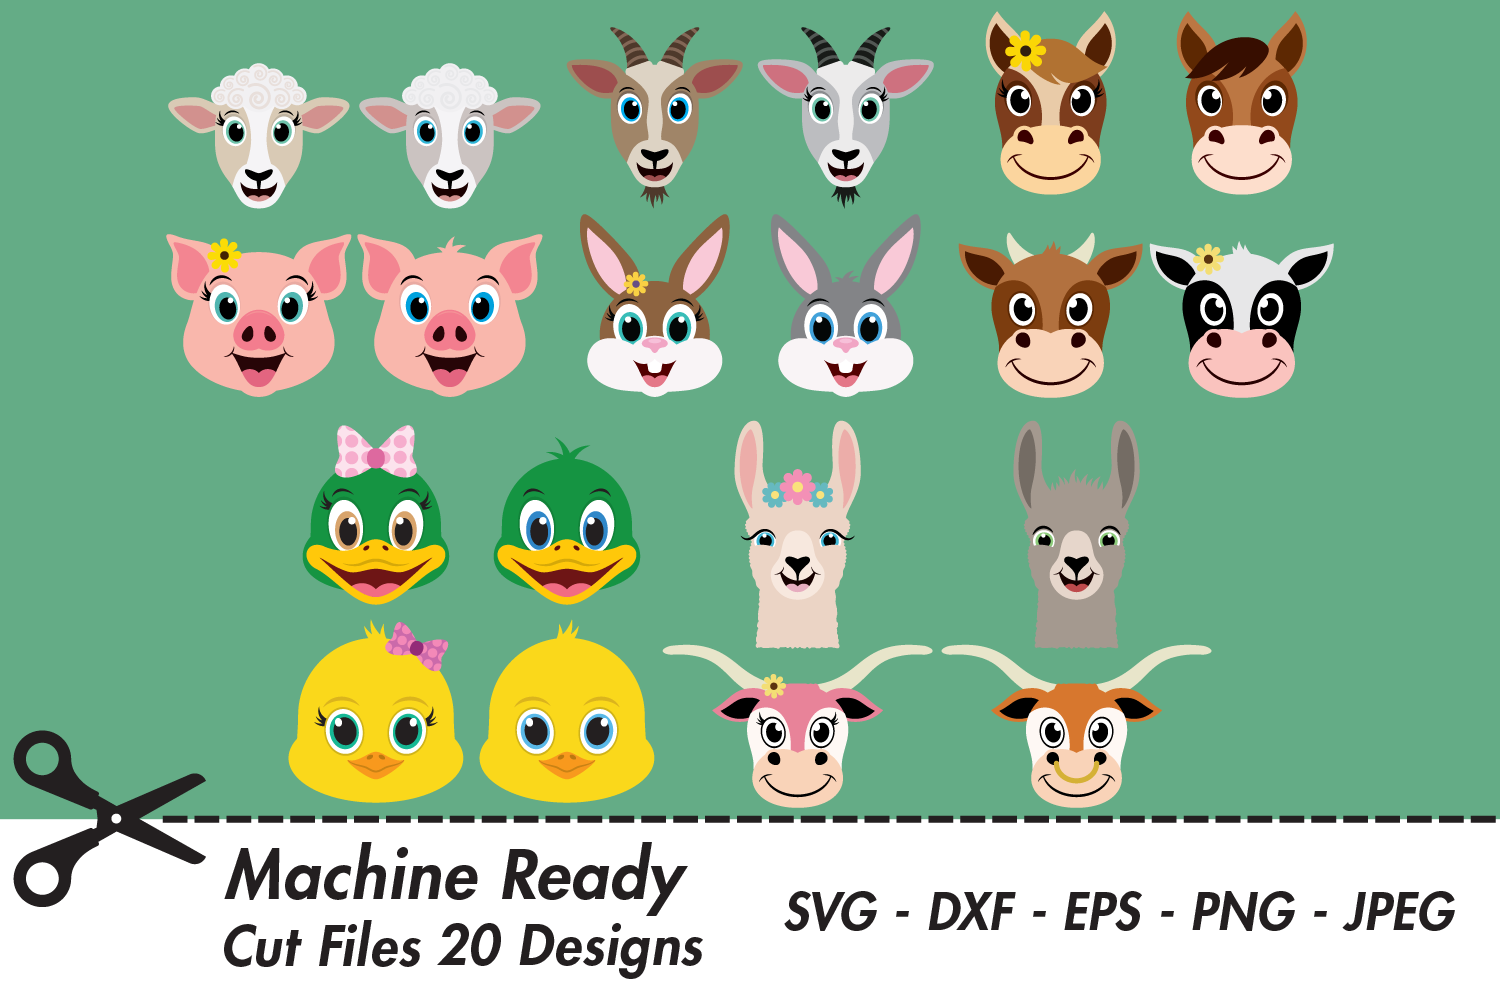 Download Free Cute Barnyard Animal Face Bundle Graphic By Captaincreative for Cricut Explore, Silhouette and other cutting machines.